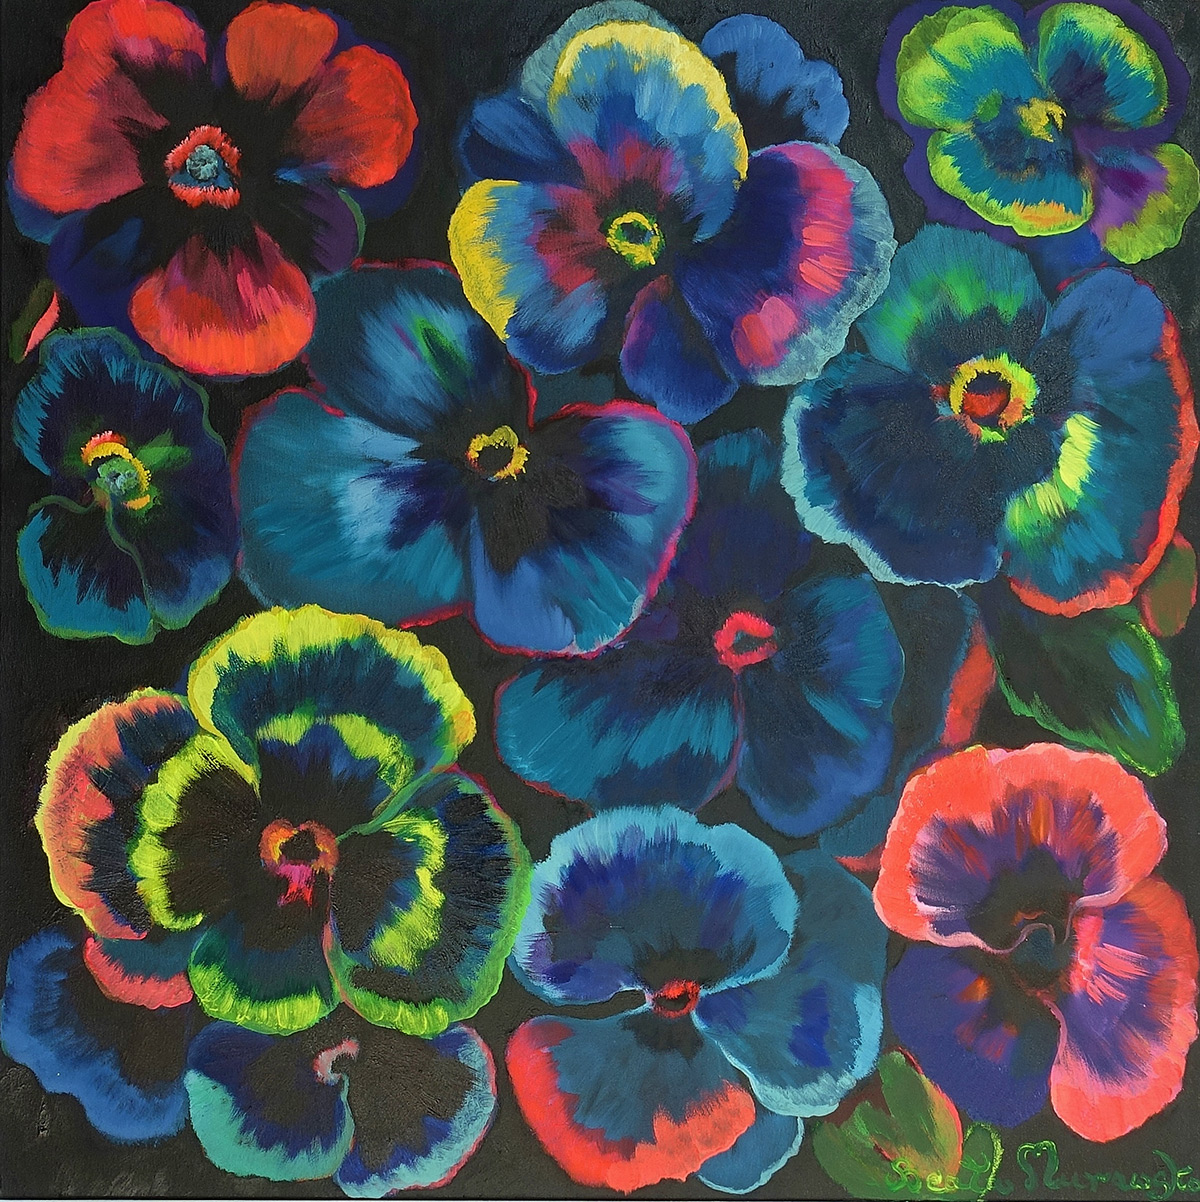 Beata Murawska : Mystical pansies